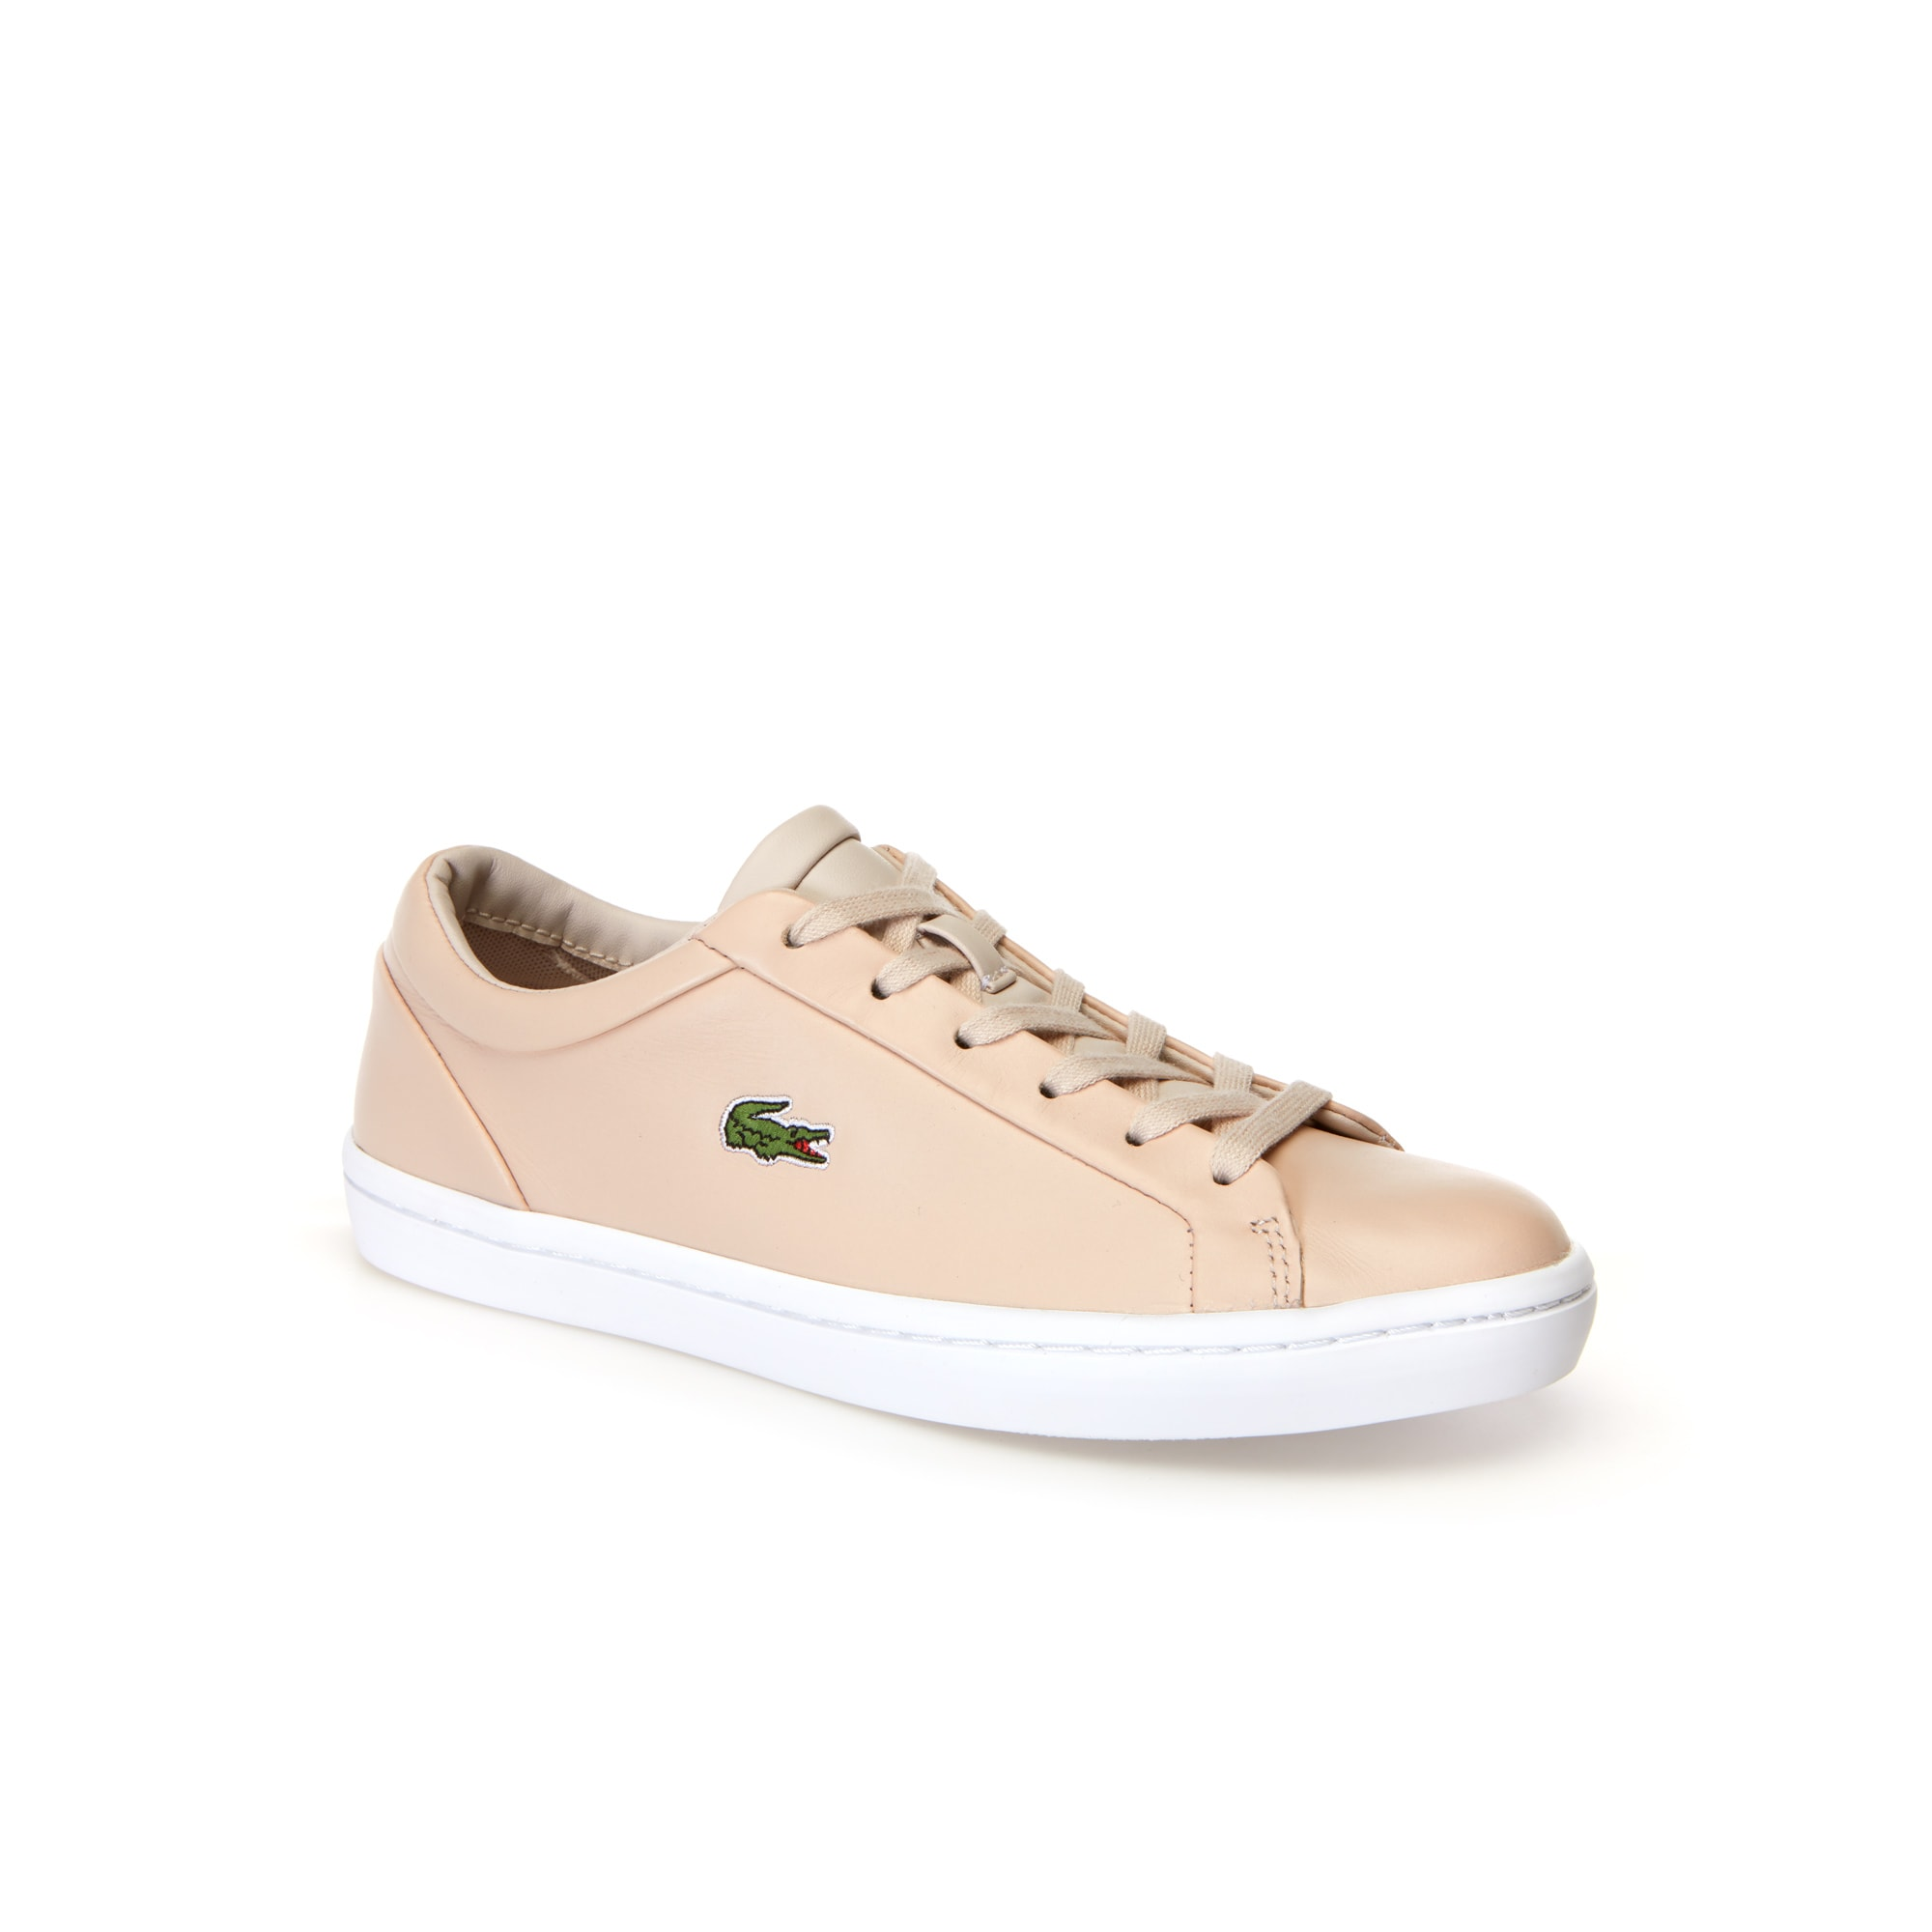 Women's Straightset Lace Leather Sneakers